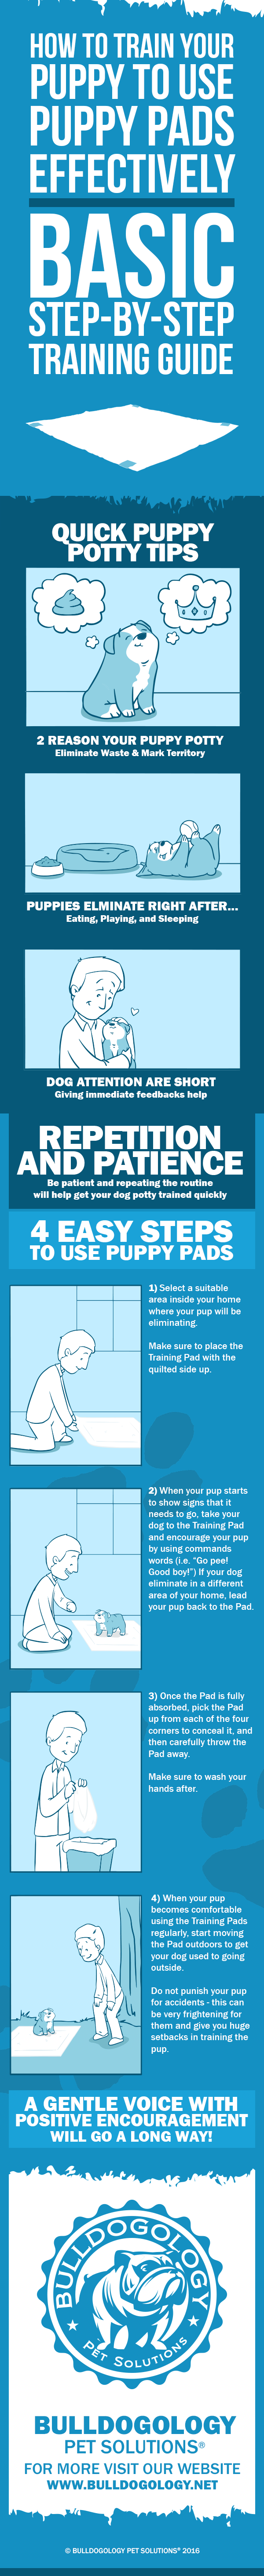 Training Your Puppy to Use Puppy Pads